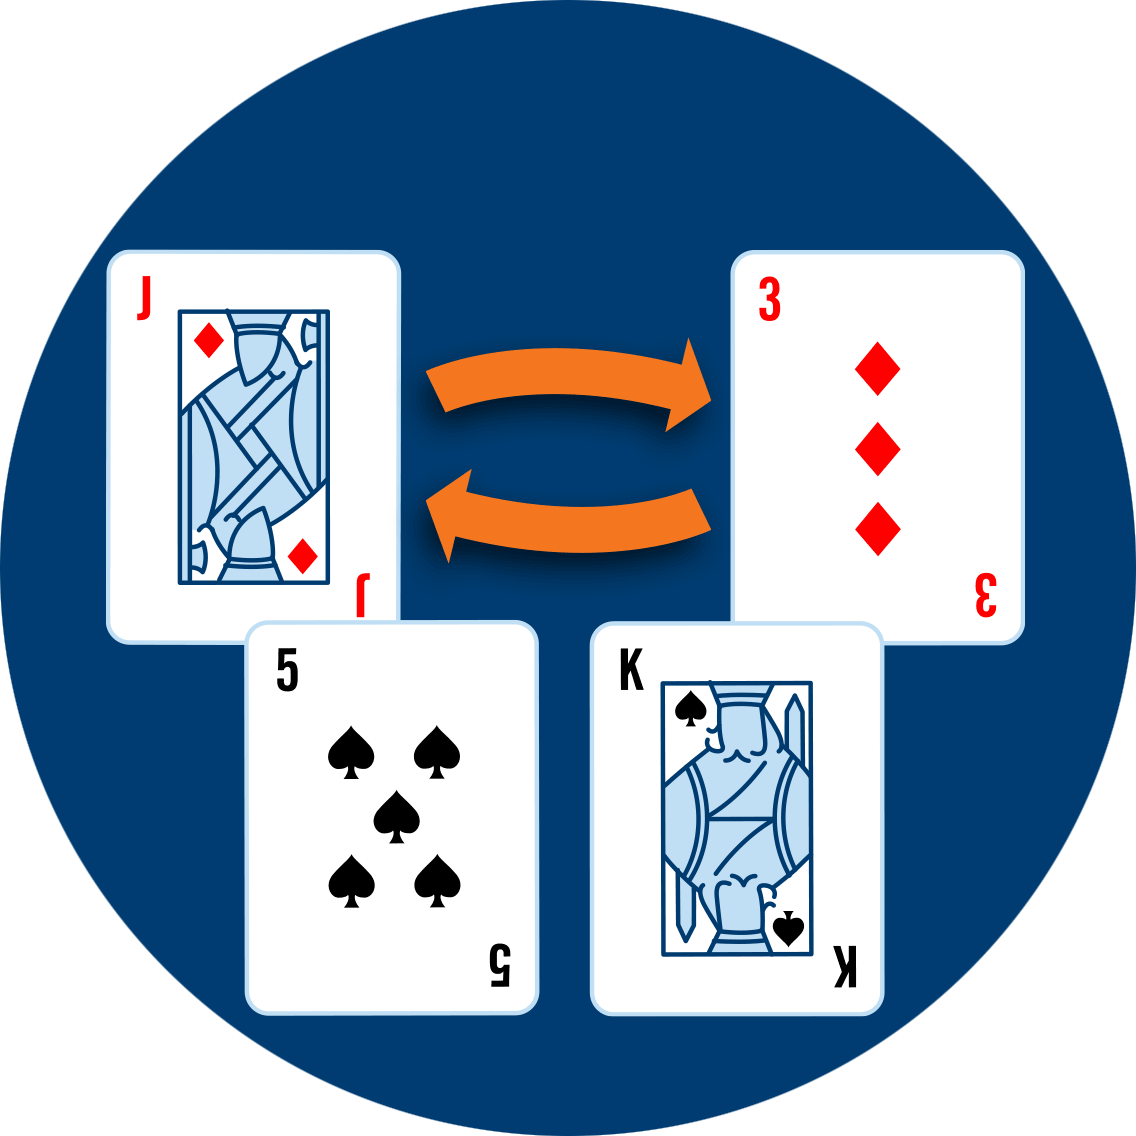 3 of diamonds switching with a jack of diamonds to make one hand, a 3 of diamonds with 5 of spades and the second hand, a jack of diamonds and king of spades.